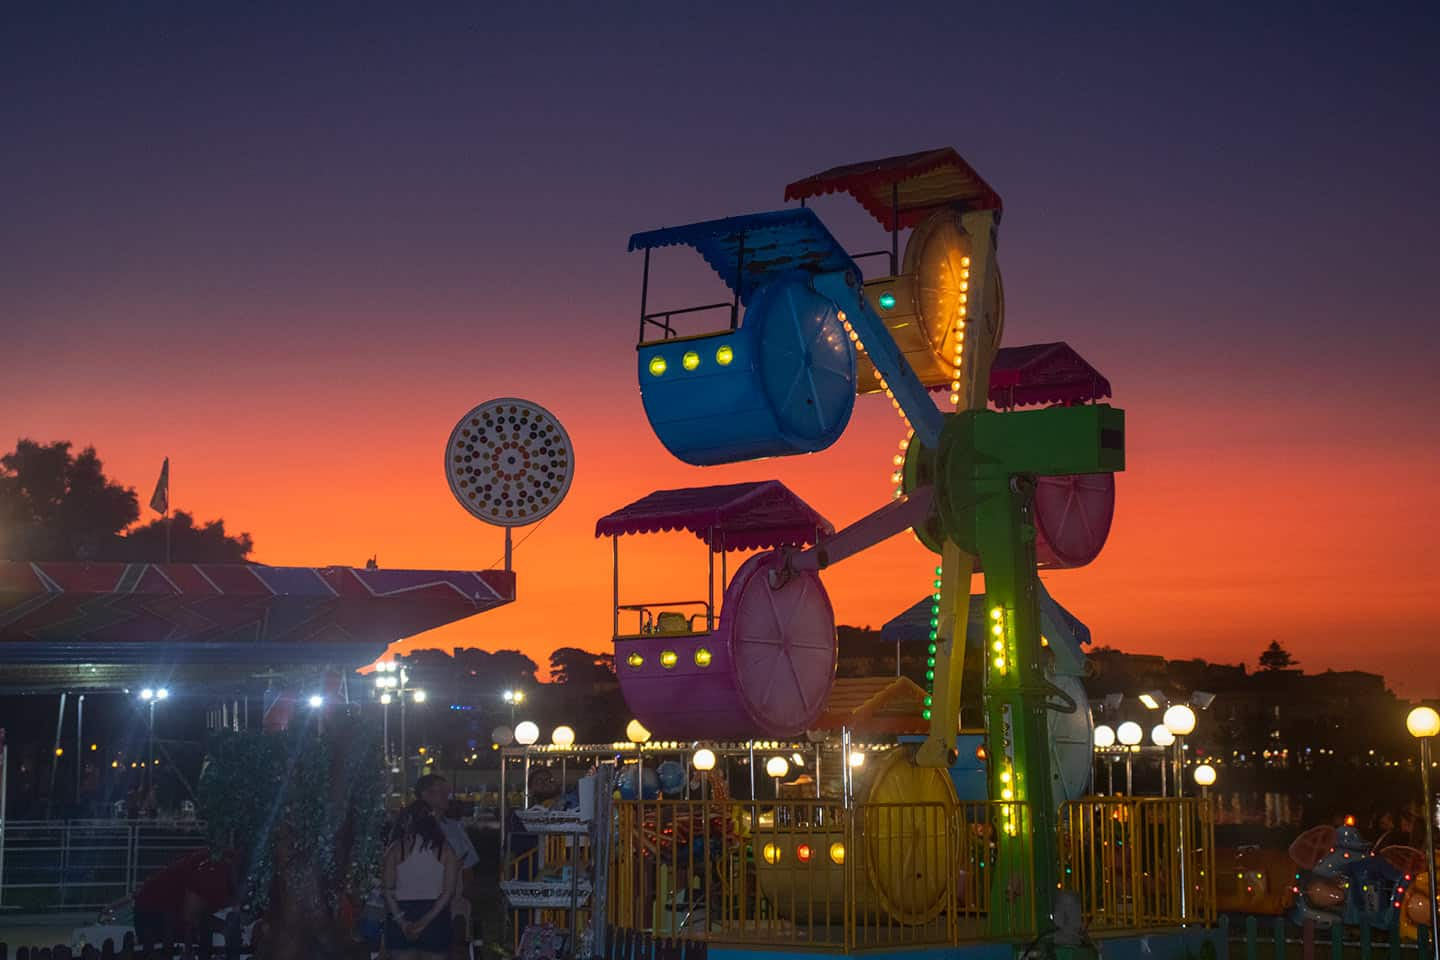 Image of the summer funfair at Rethymno Crete